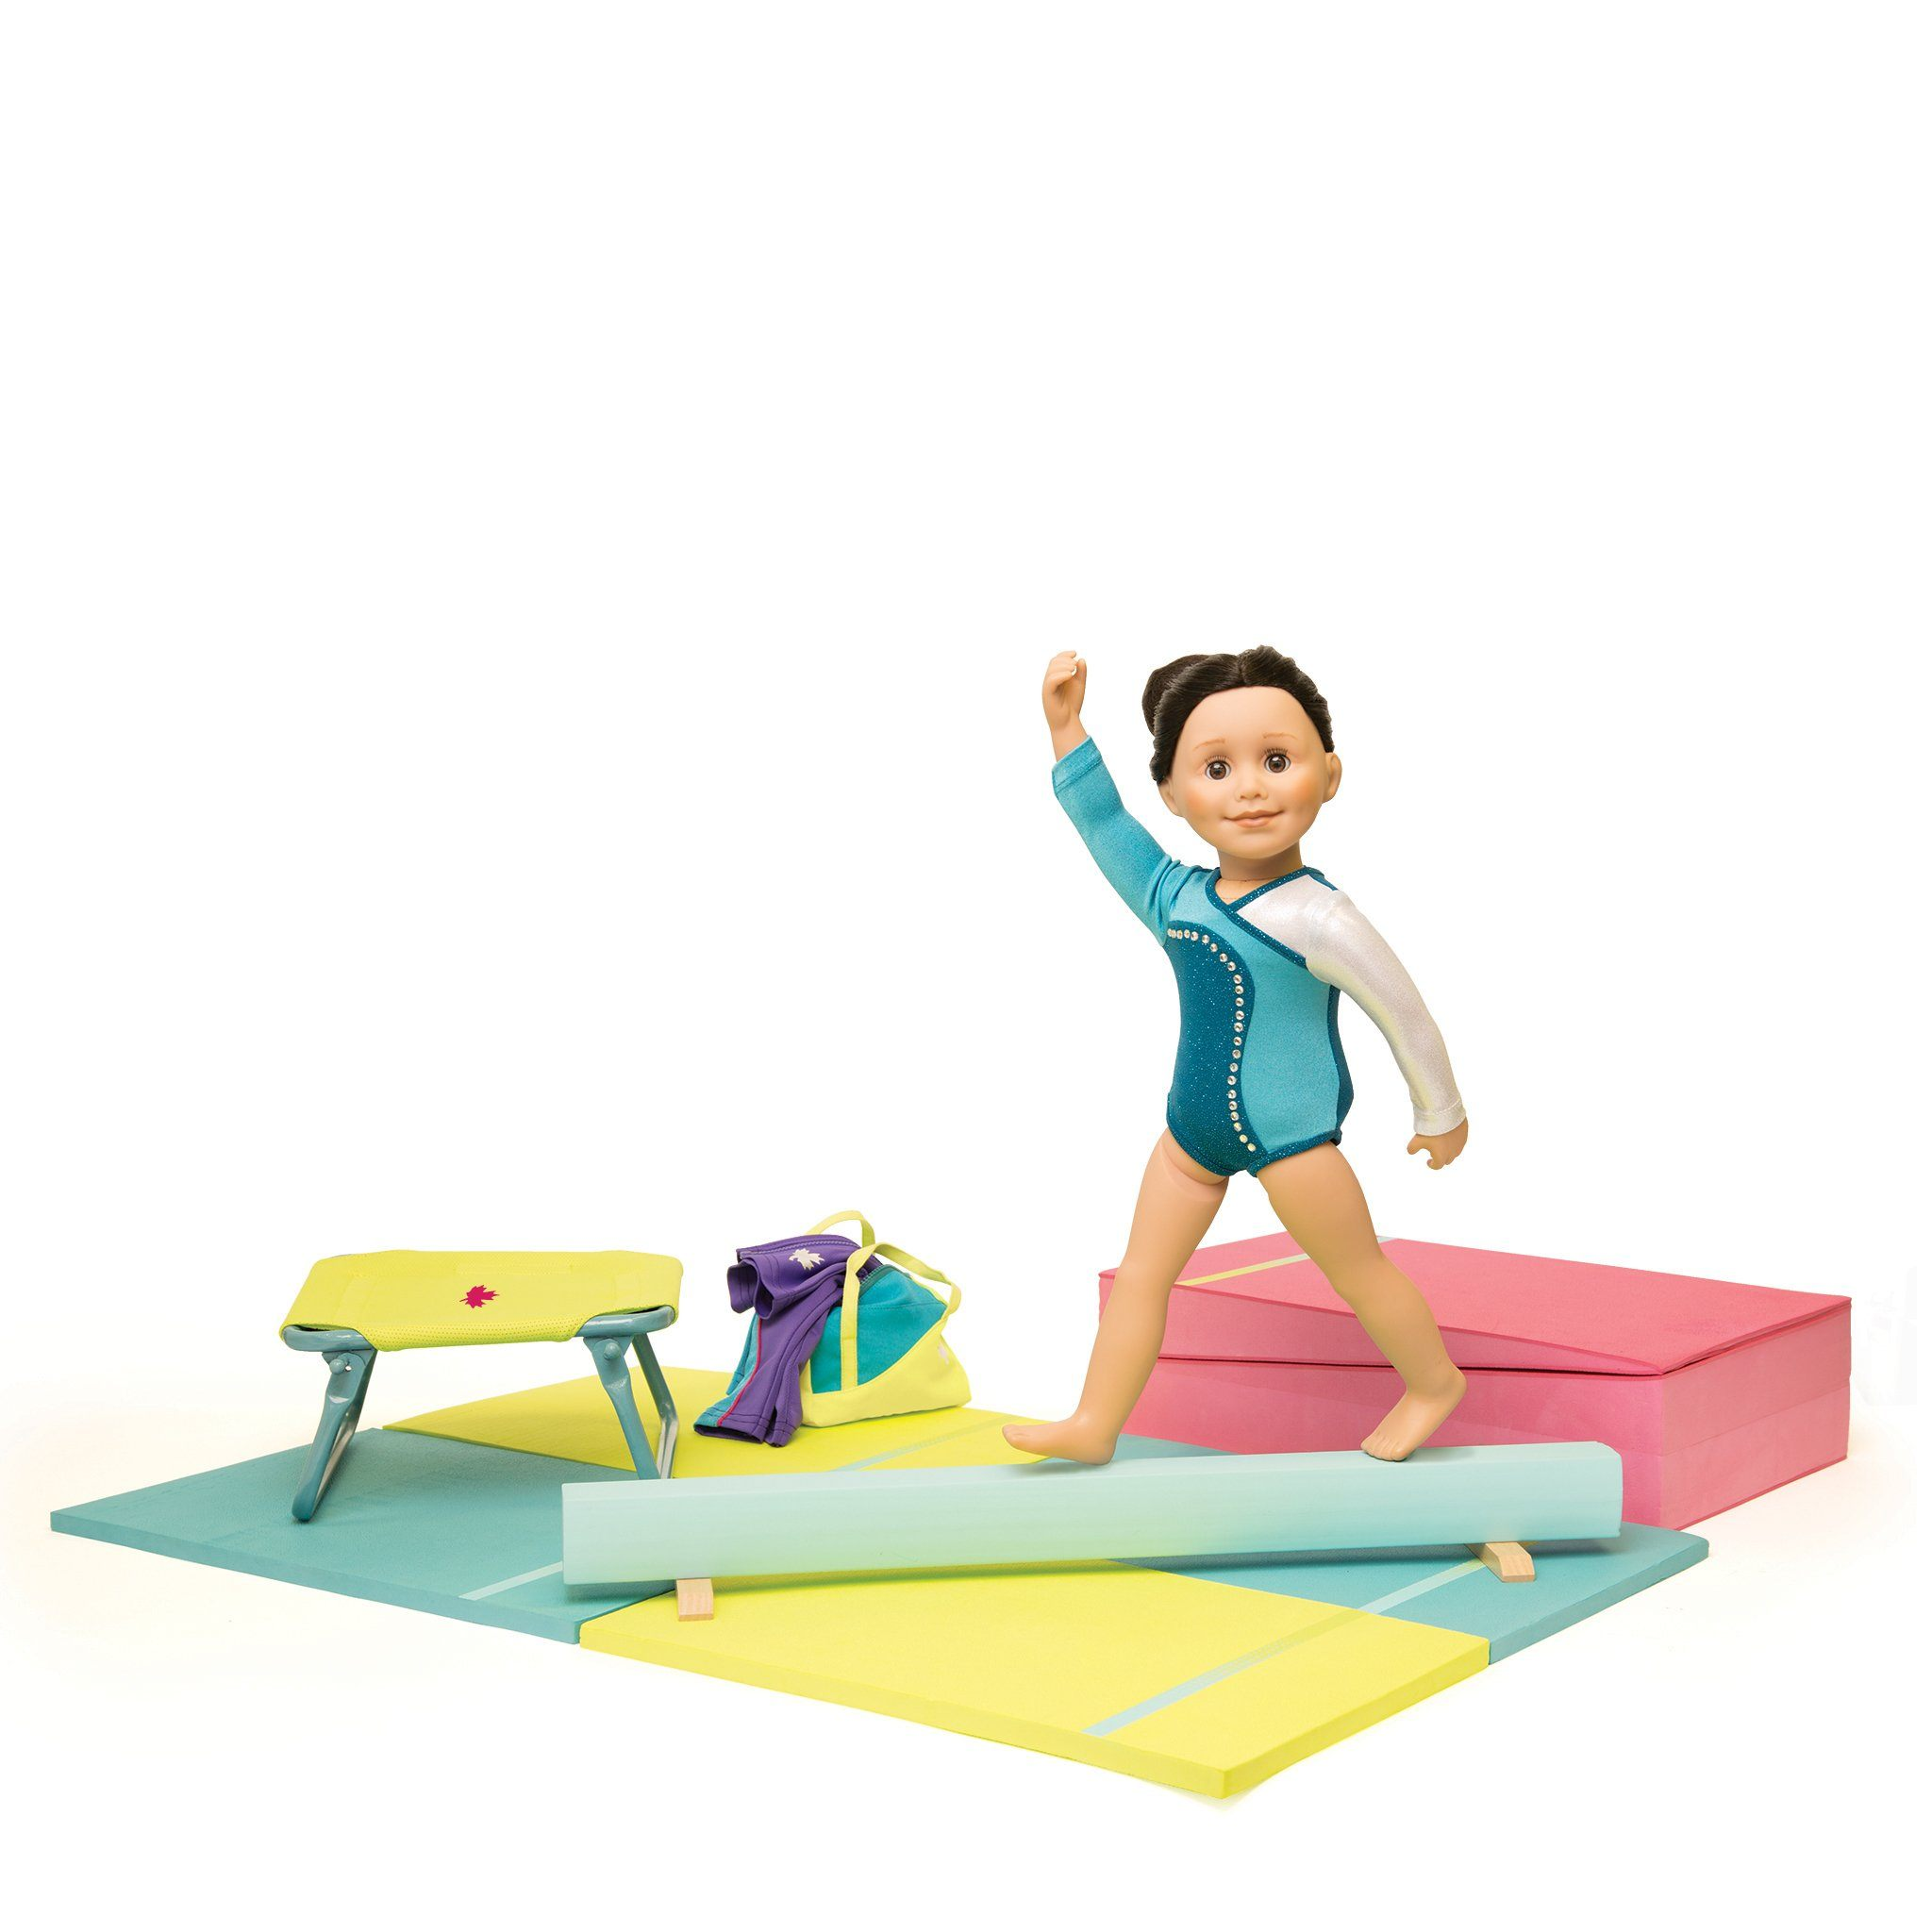 Gymnastics Equipment In Canada: Gymnastics Set For 18 Inch Dolls